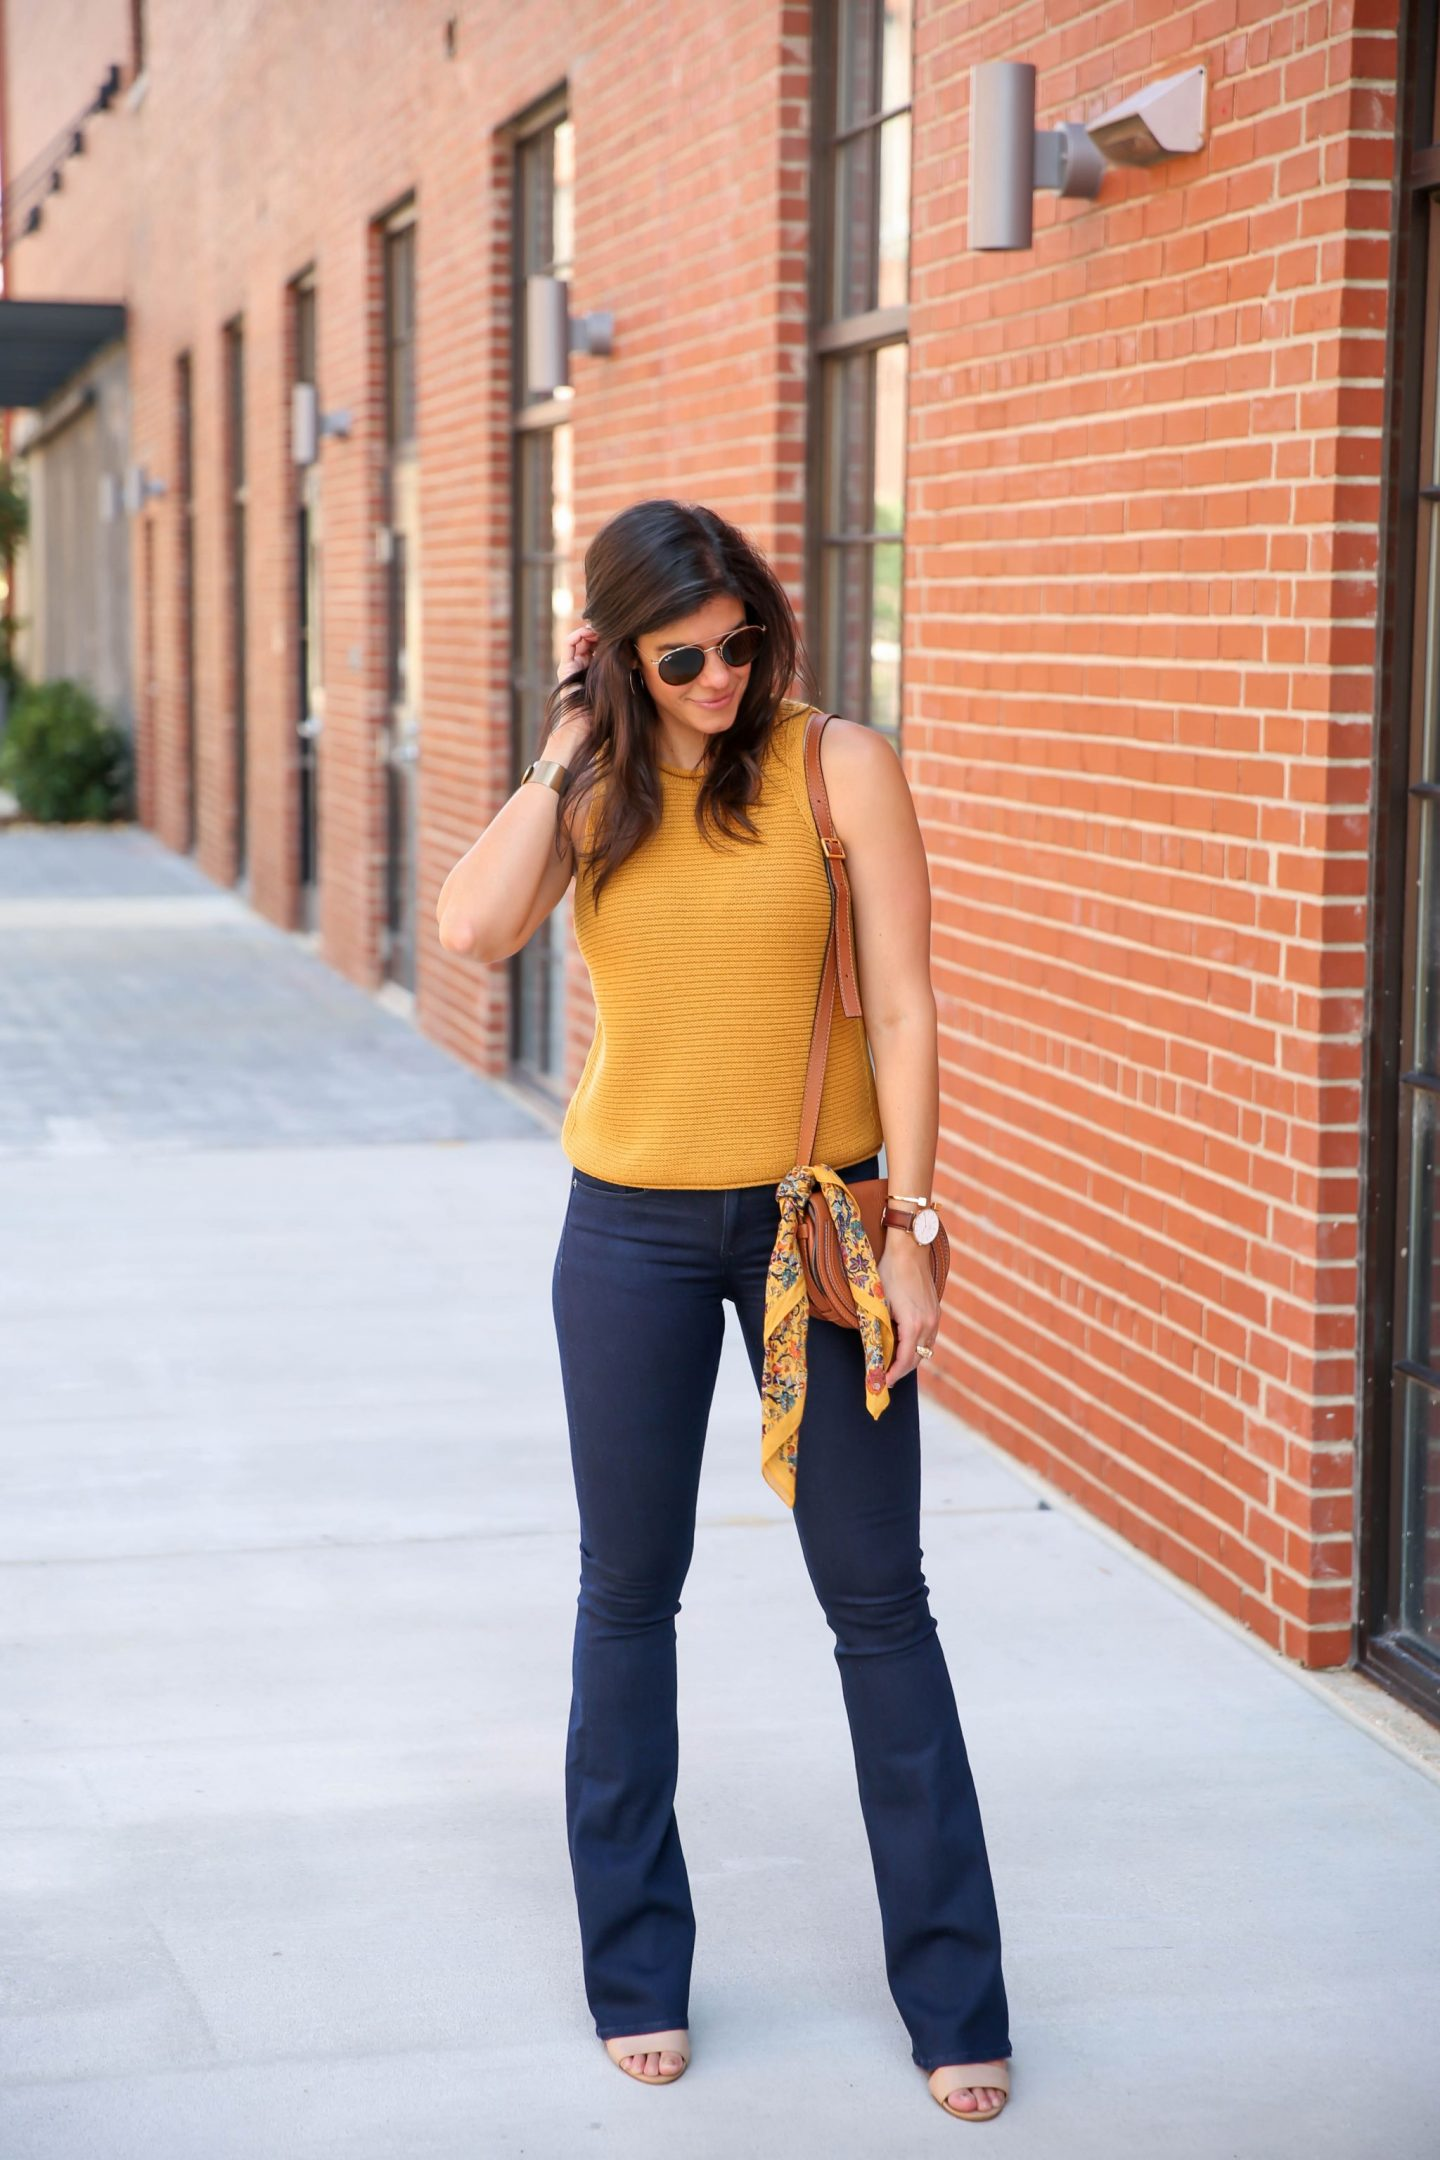 70s style for fall - mustard sweater tank - Lauren schwaiger